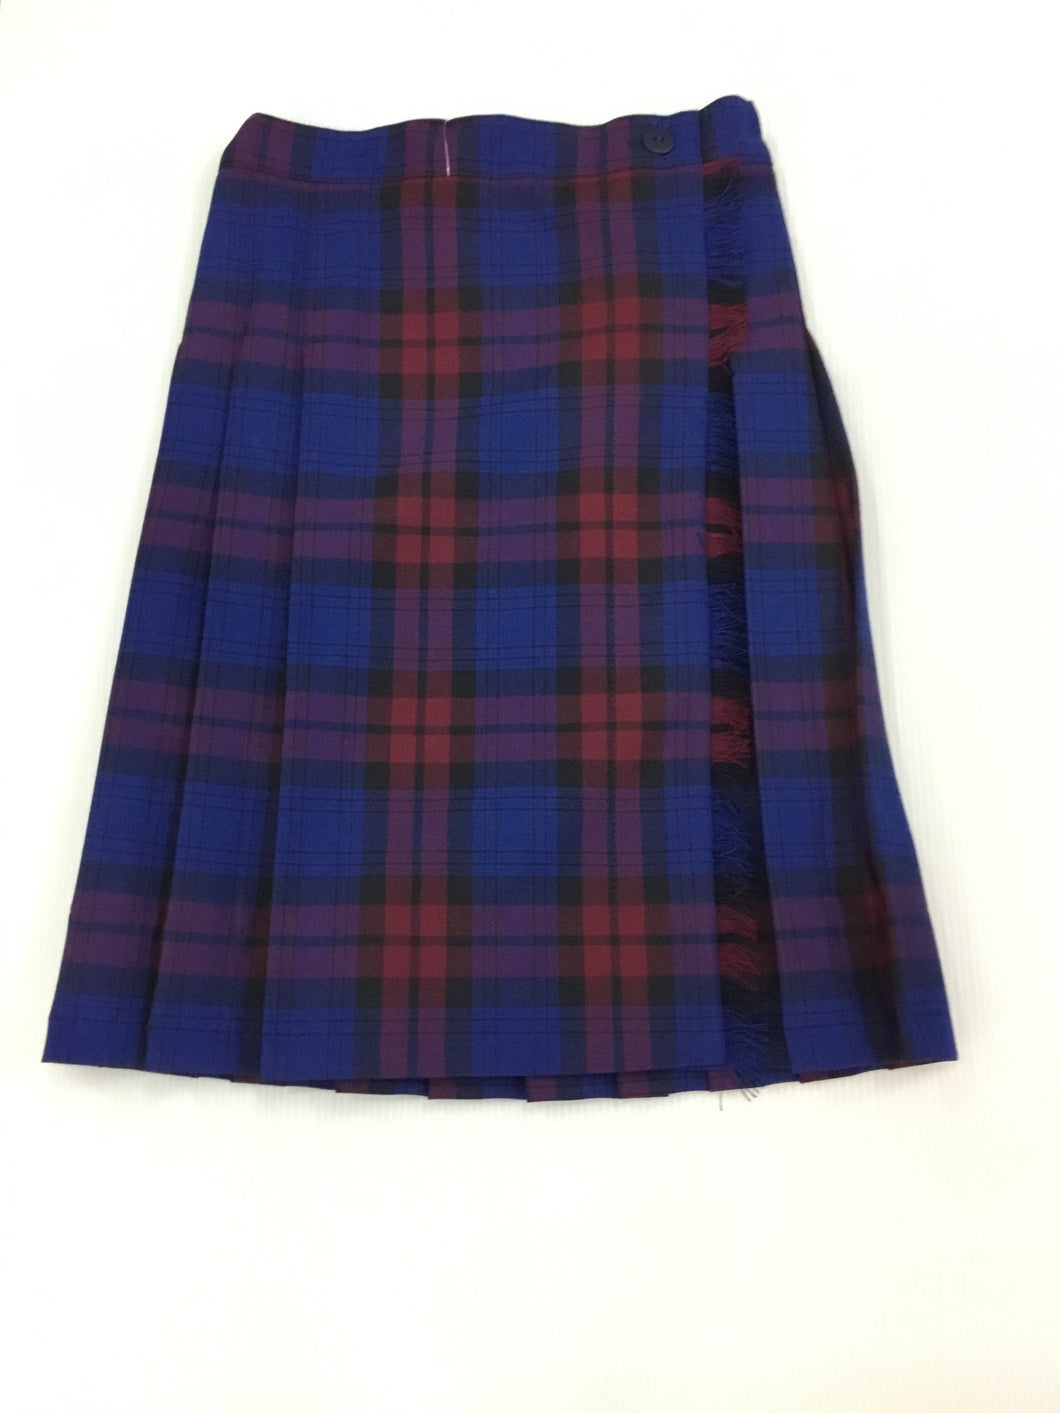 ST. JOSEPH'S-WINTER KILT